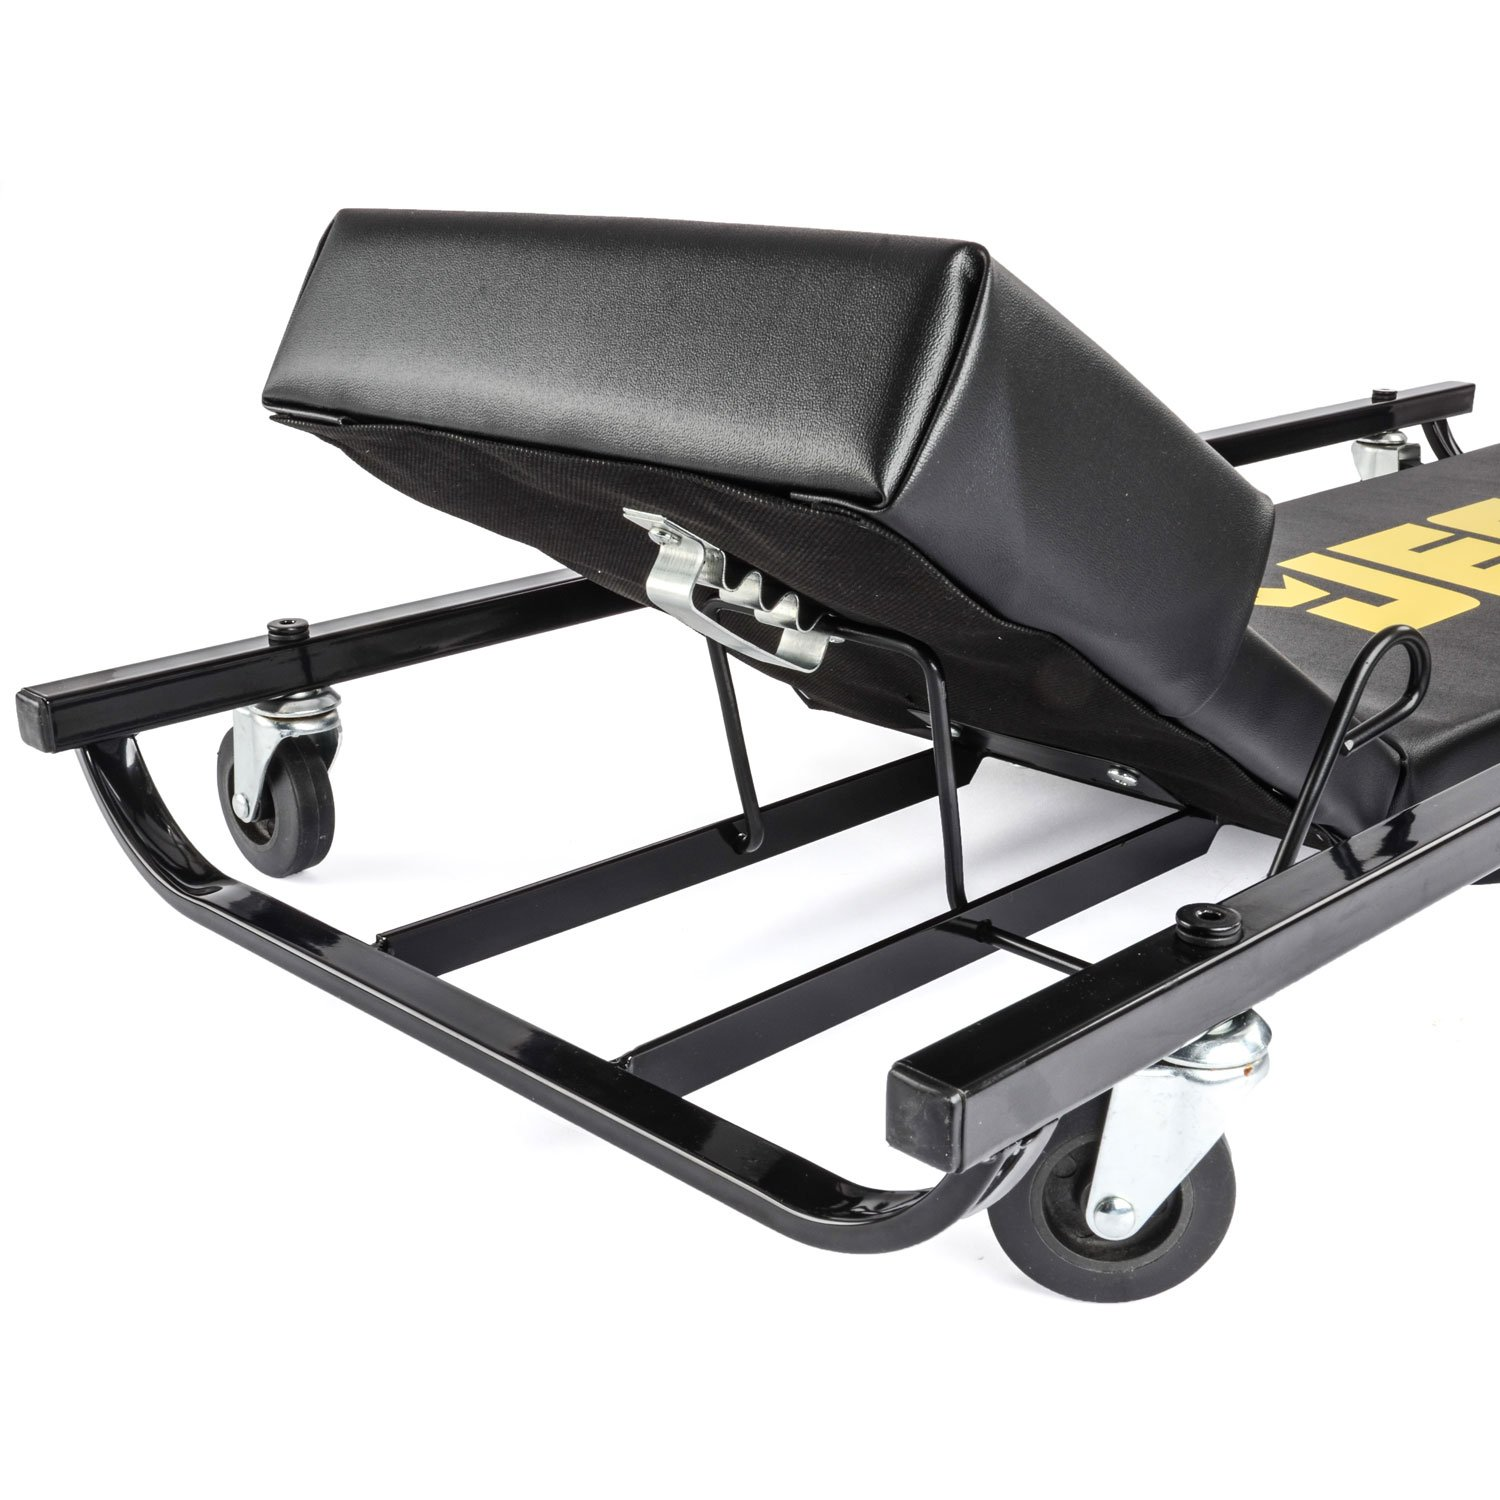 JEGS Performance Products 81160 Creeper and Air Seat Set by Jegs (Image #5)